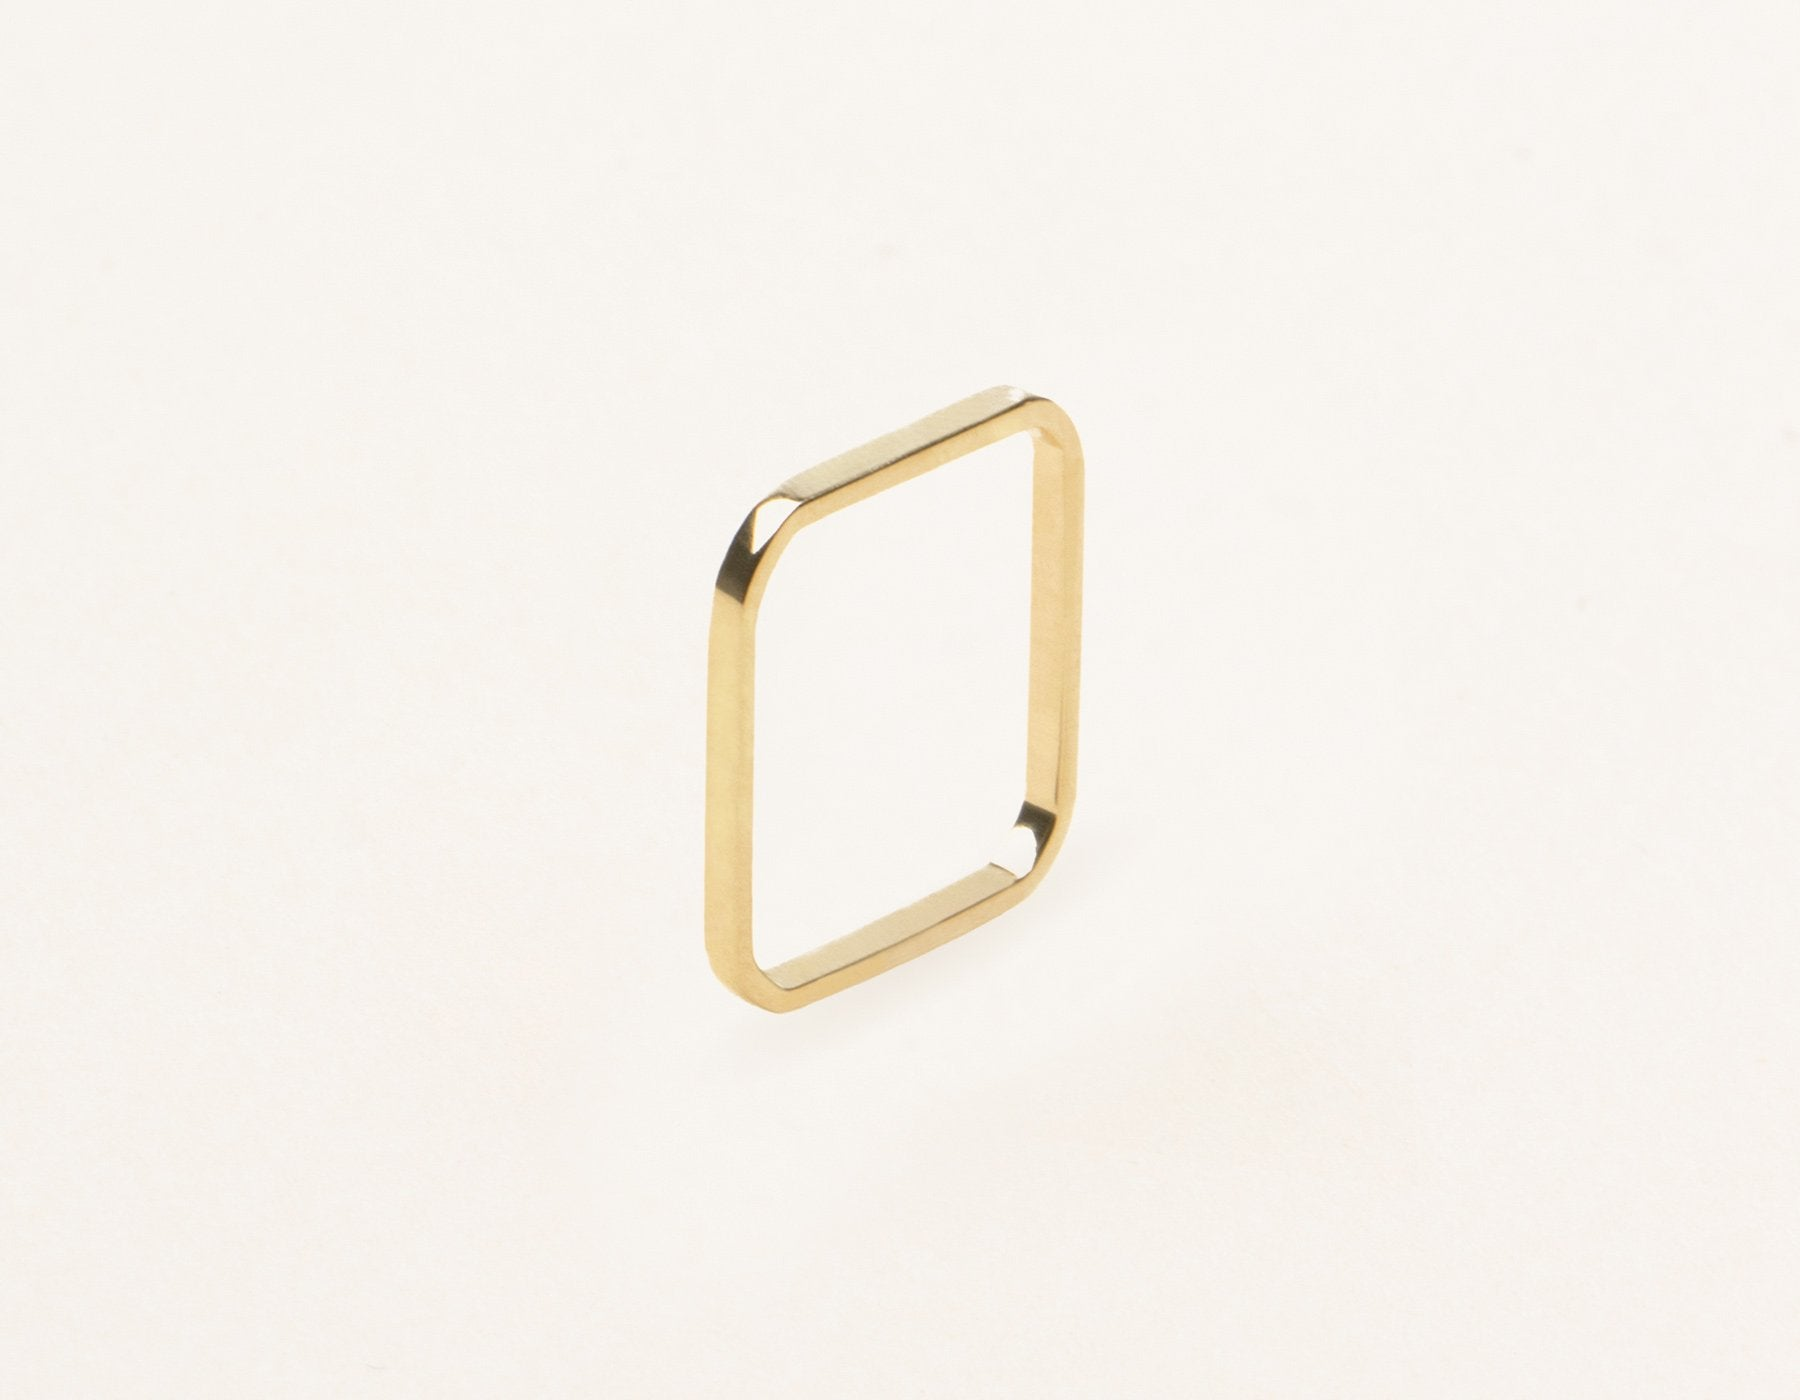 Thin simple structural Square Stacking Ring 14k solid gold Vrai and Oro, 14K Yellow Gold